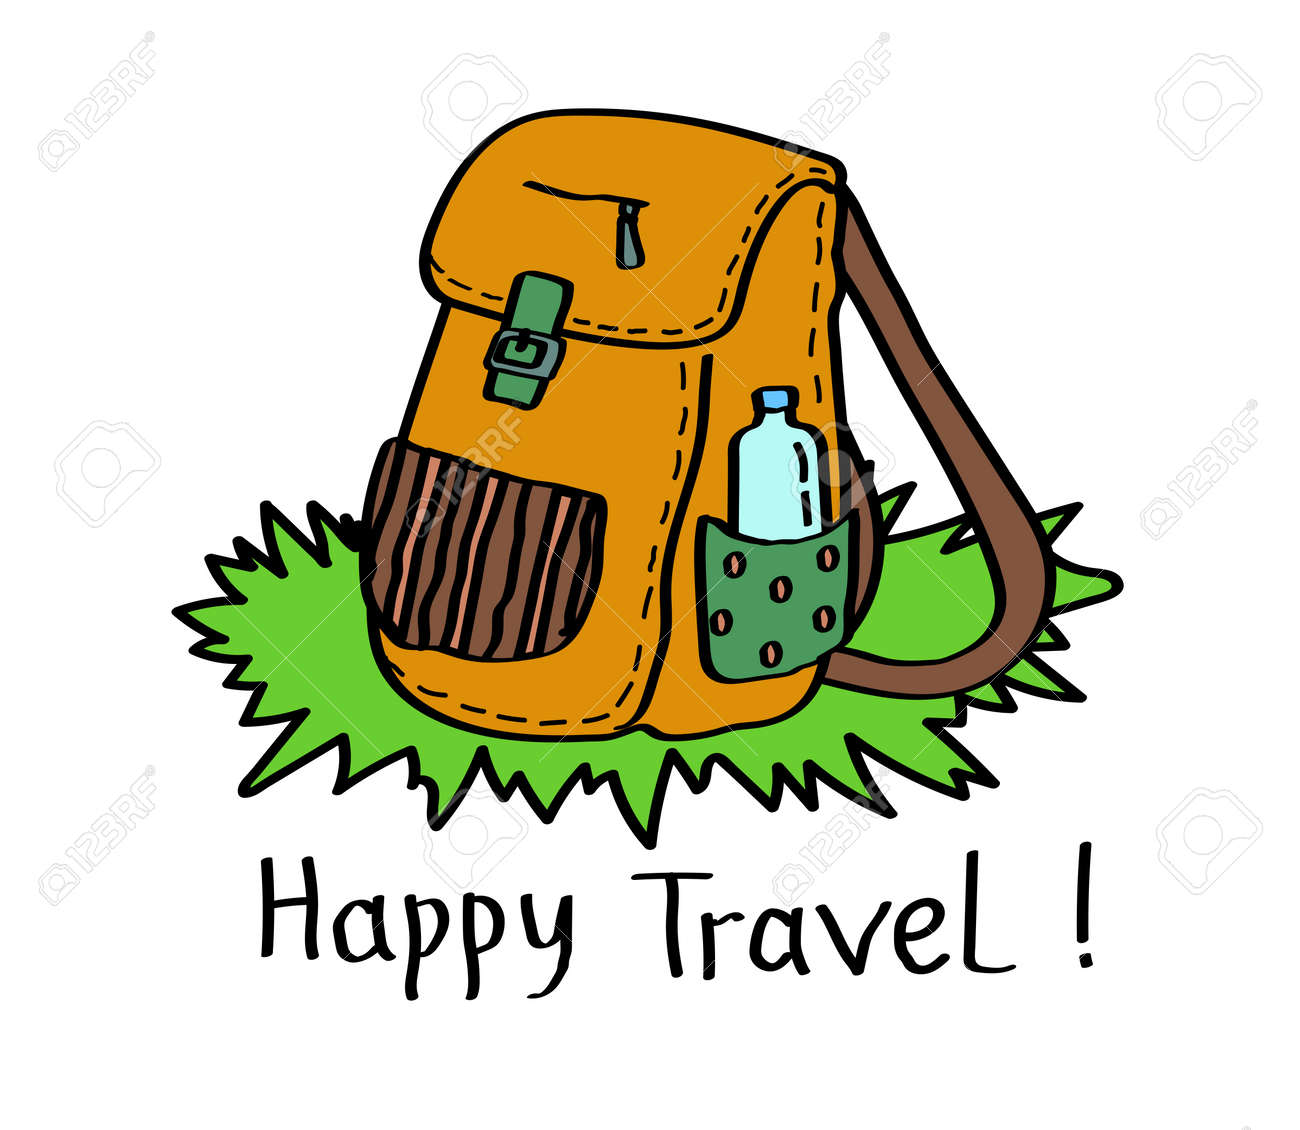 Camping backpack on a white background. Vector illustration. - 130030812